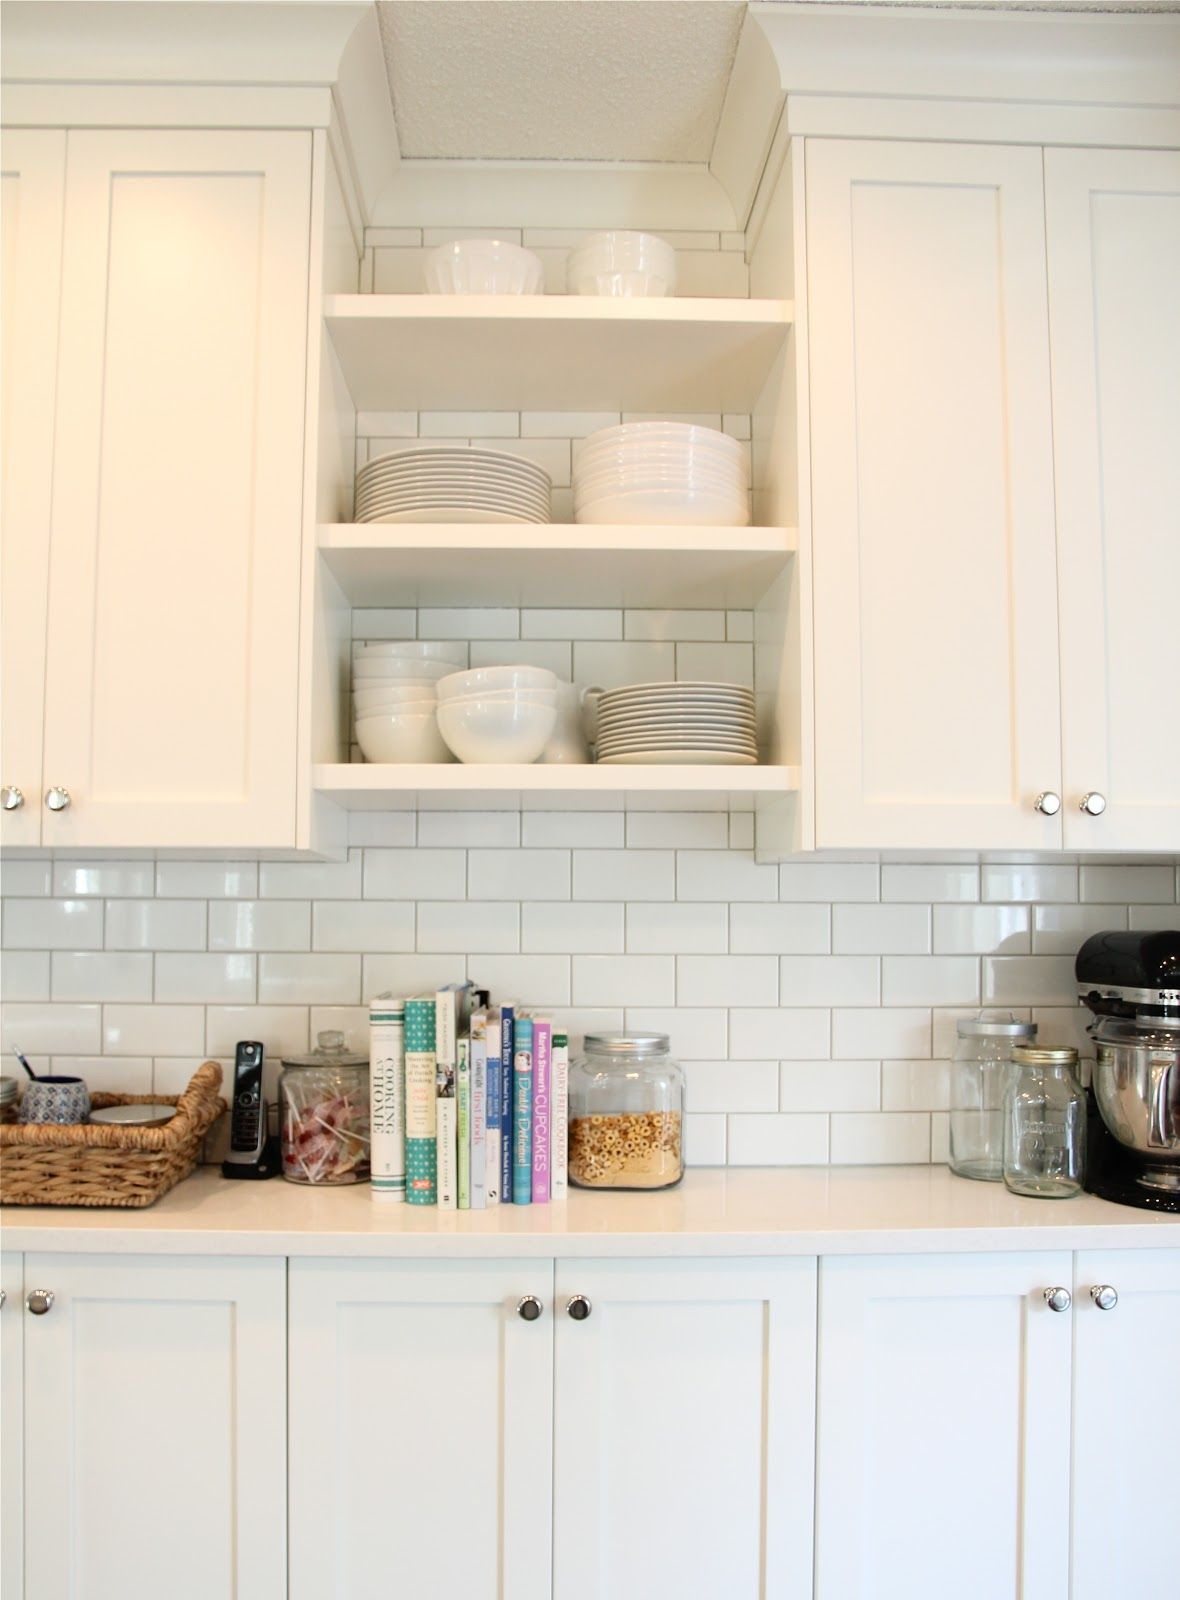 Cloud White Cabinets Light Gray Grout White Subway Tiles